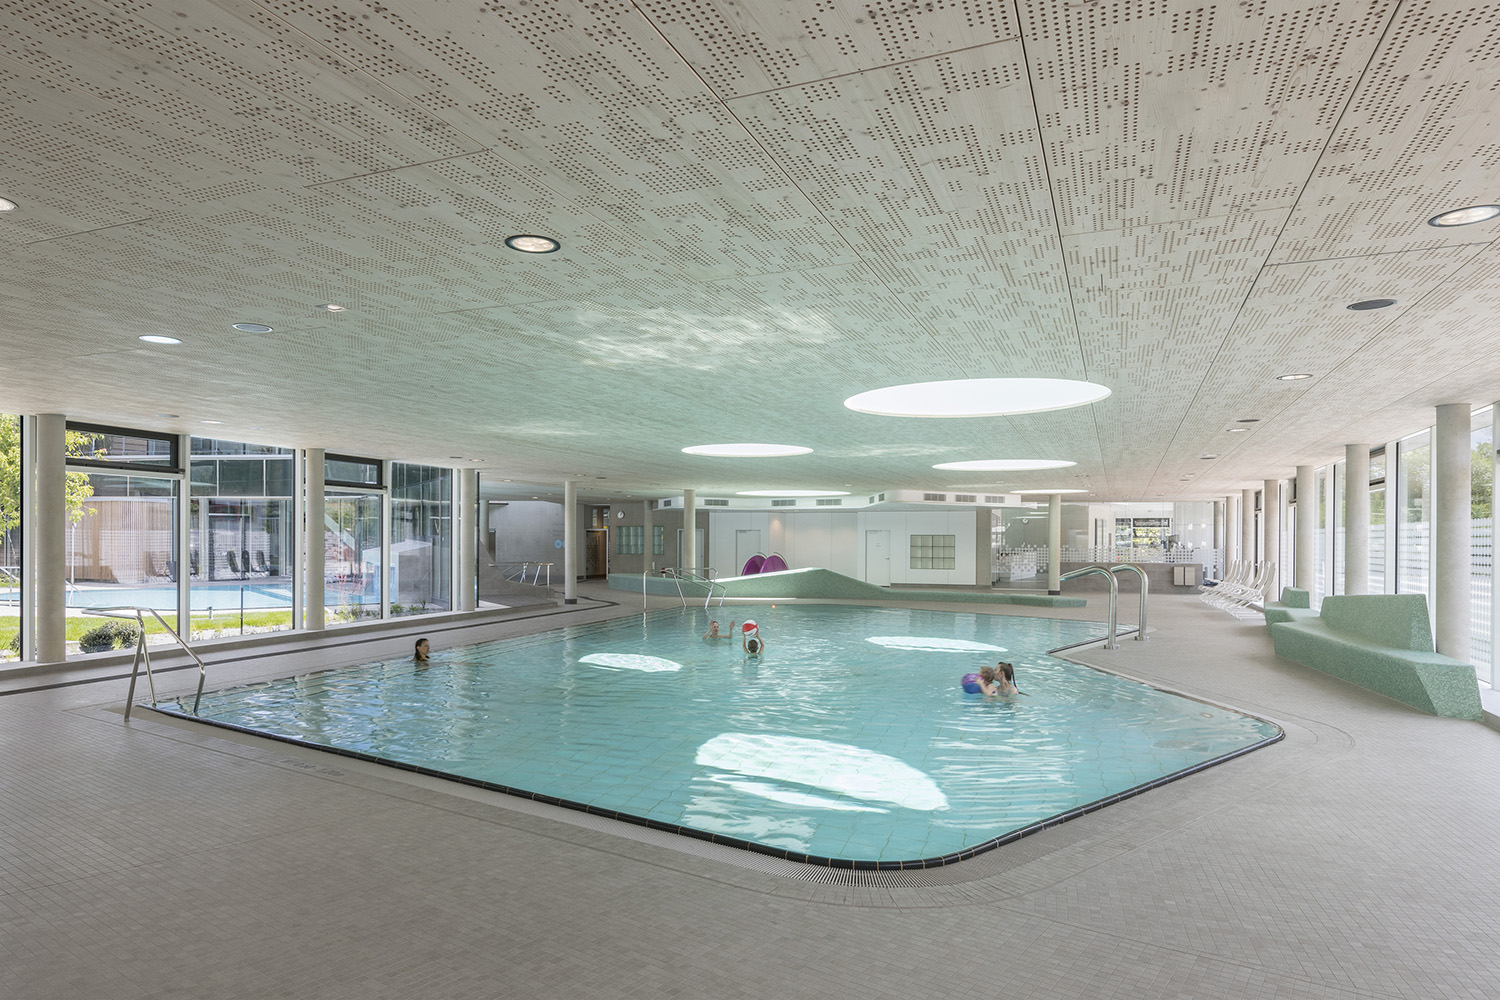 The material used for the swimming area underlines its open and transparent character. David Matthiessen